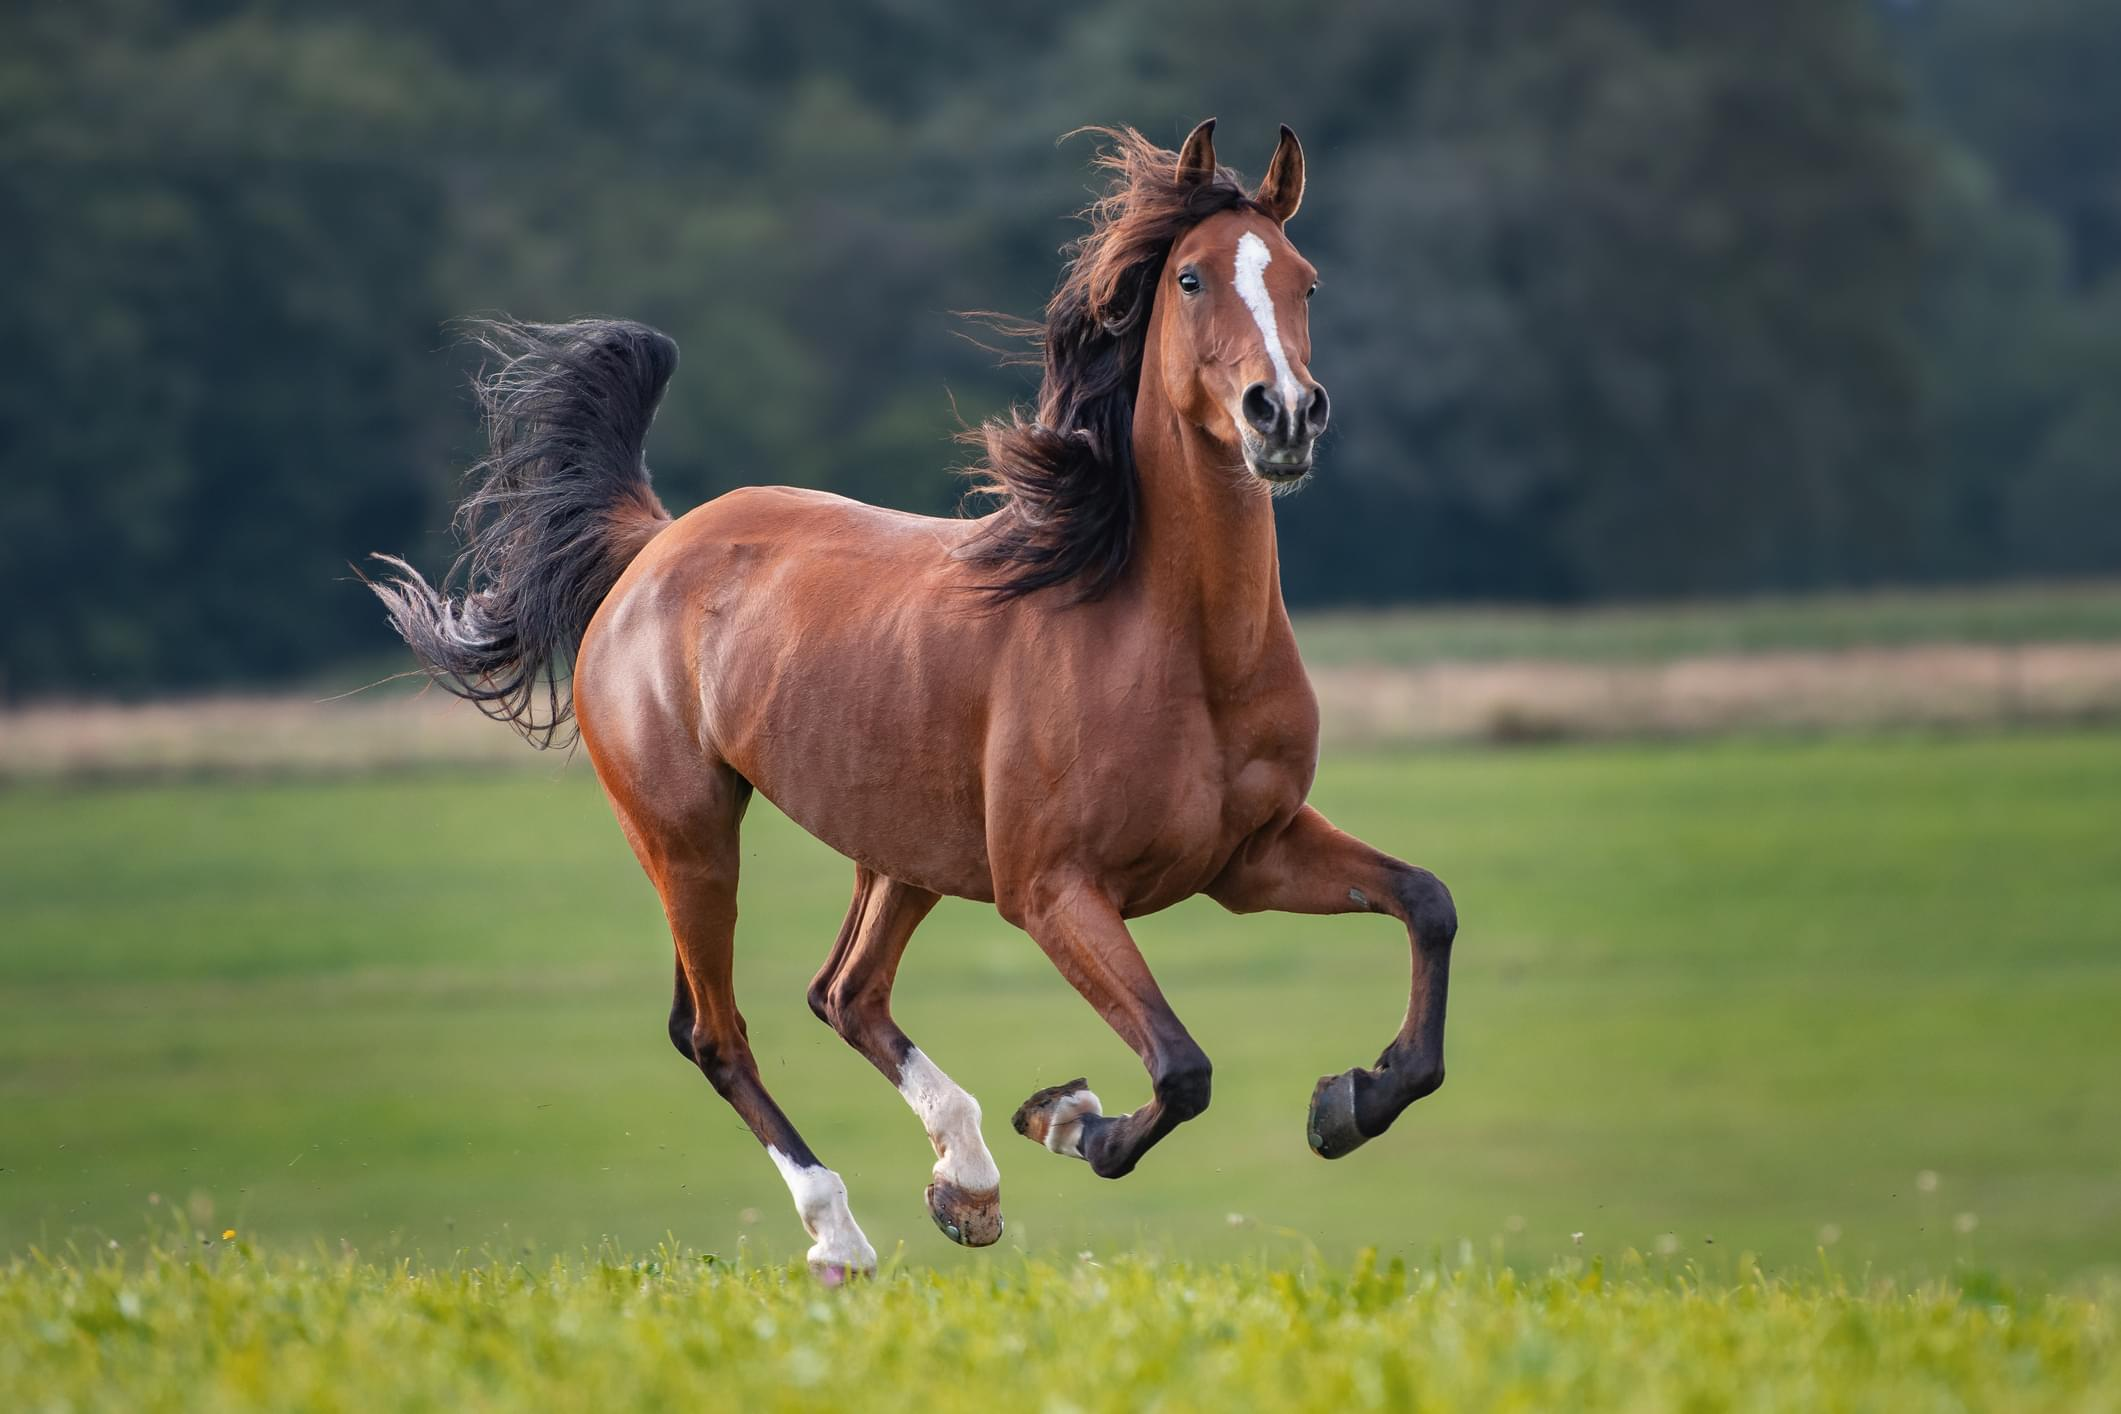 Horse Running On Land